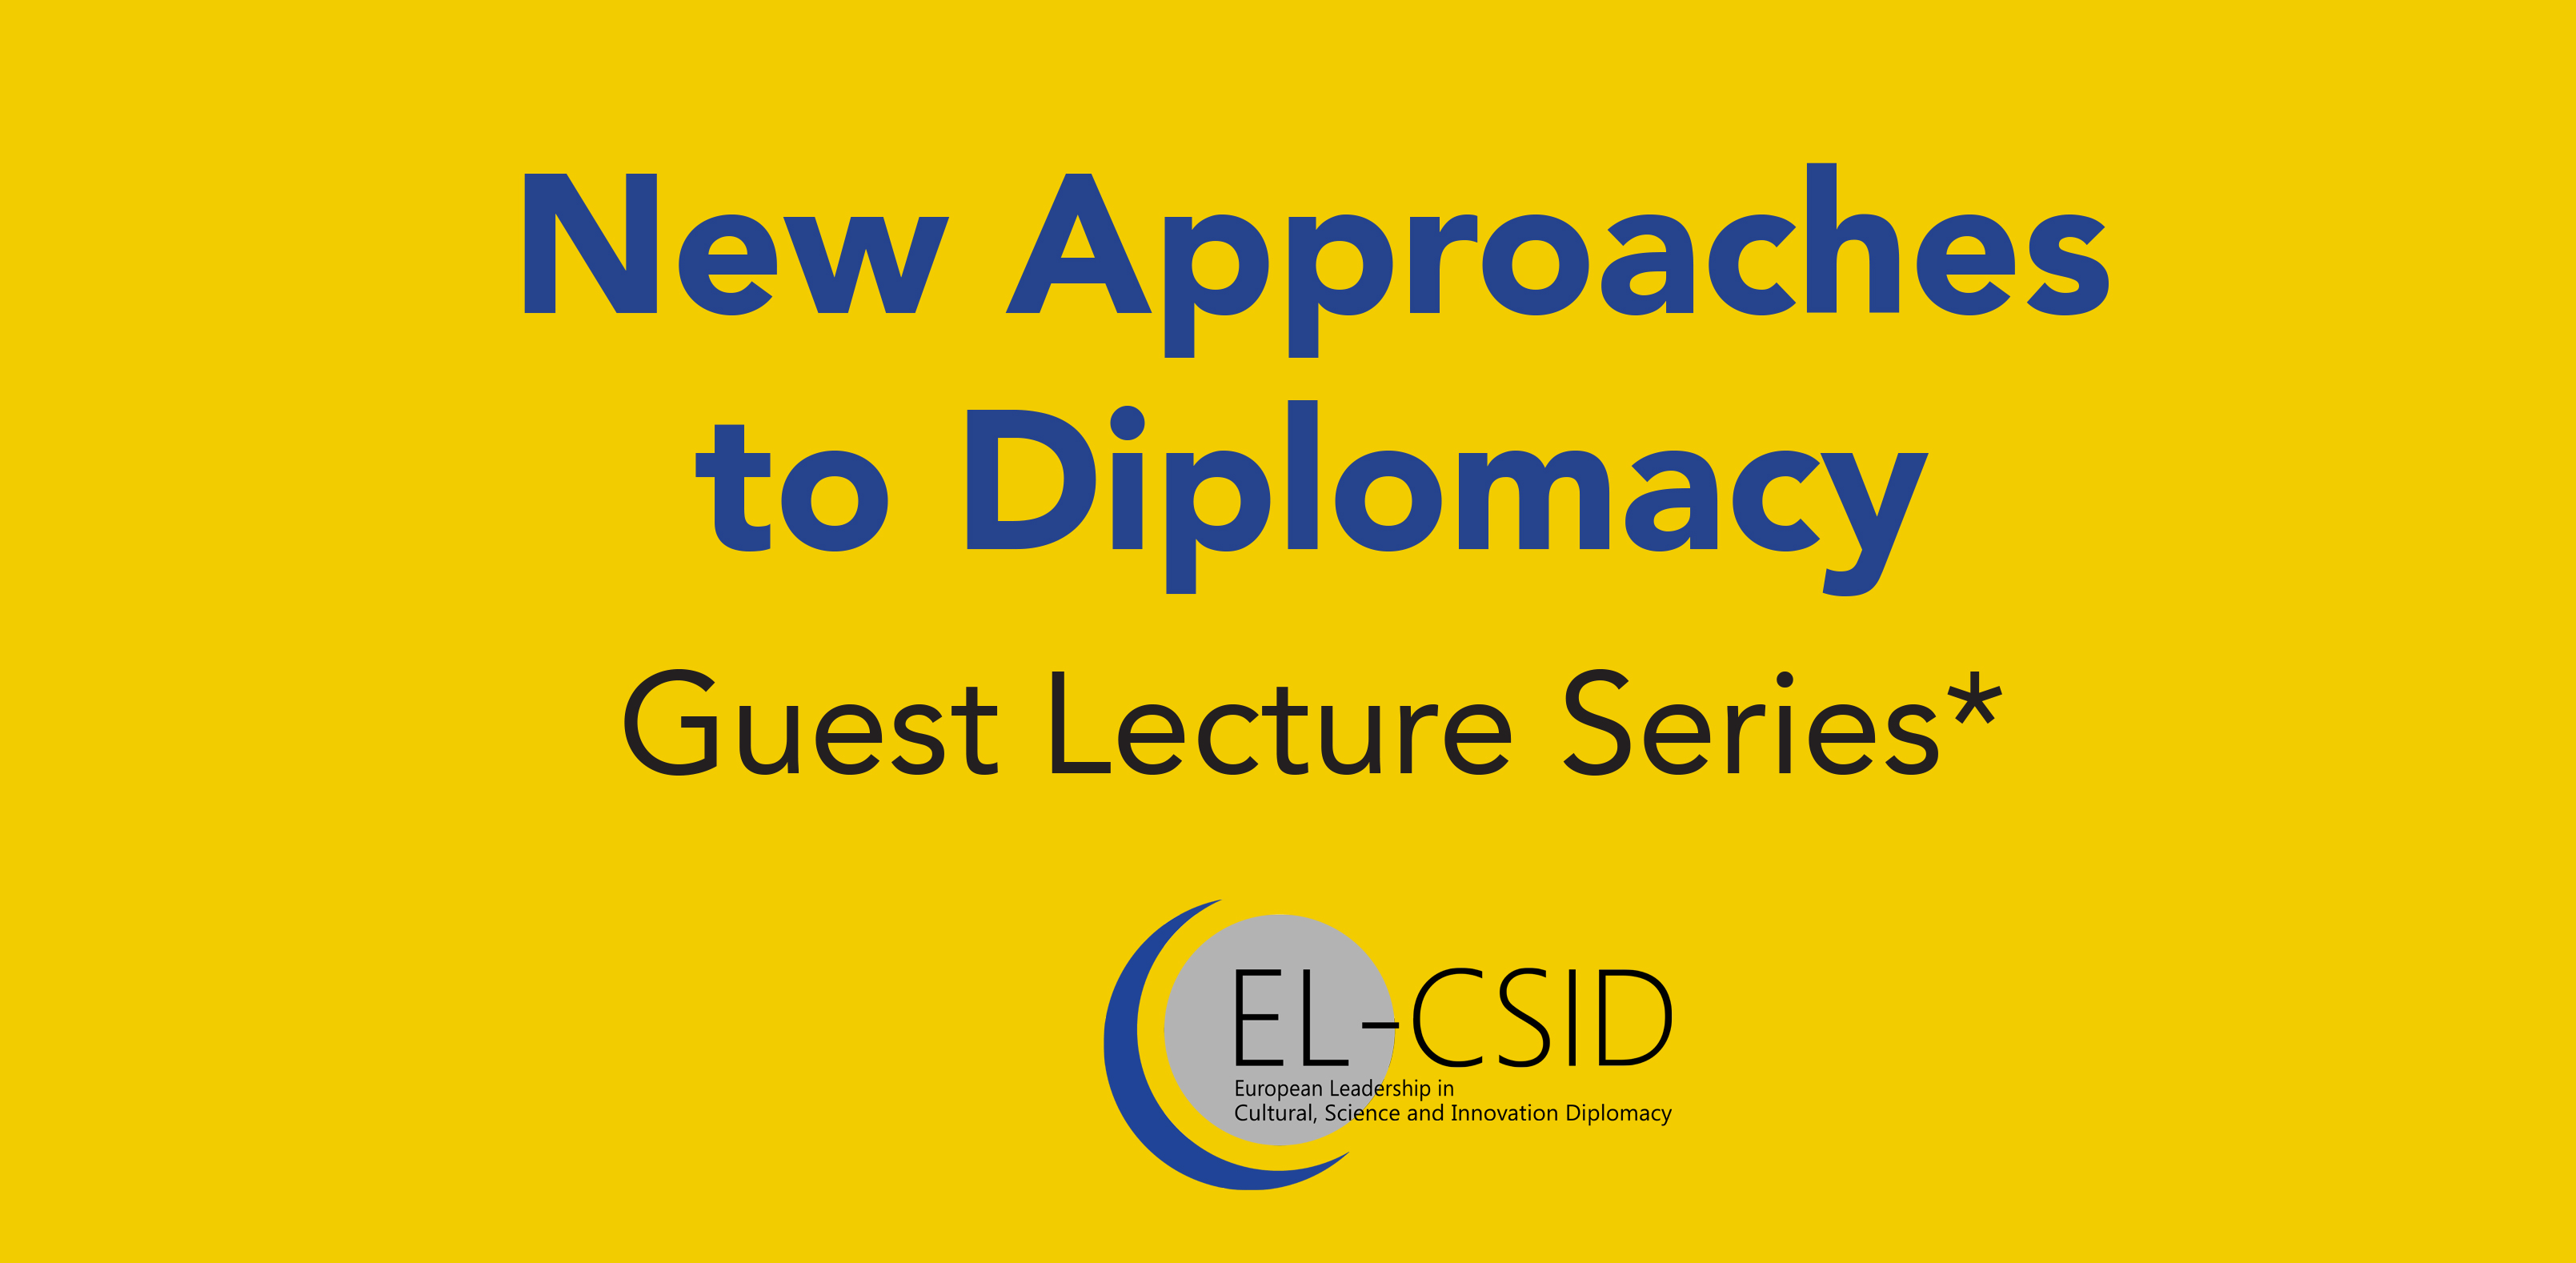 24/05/2017, Guest Lecture on New Approaches to Diplomacy